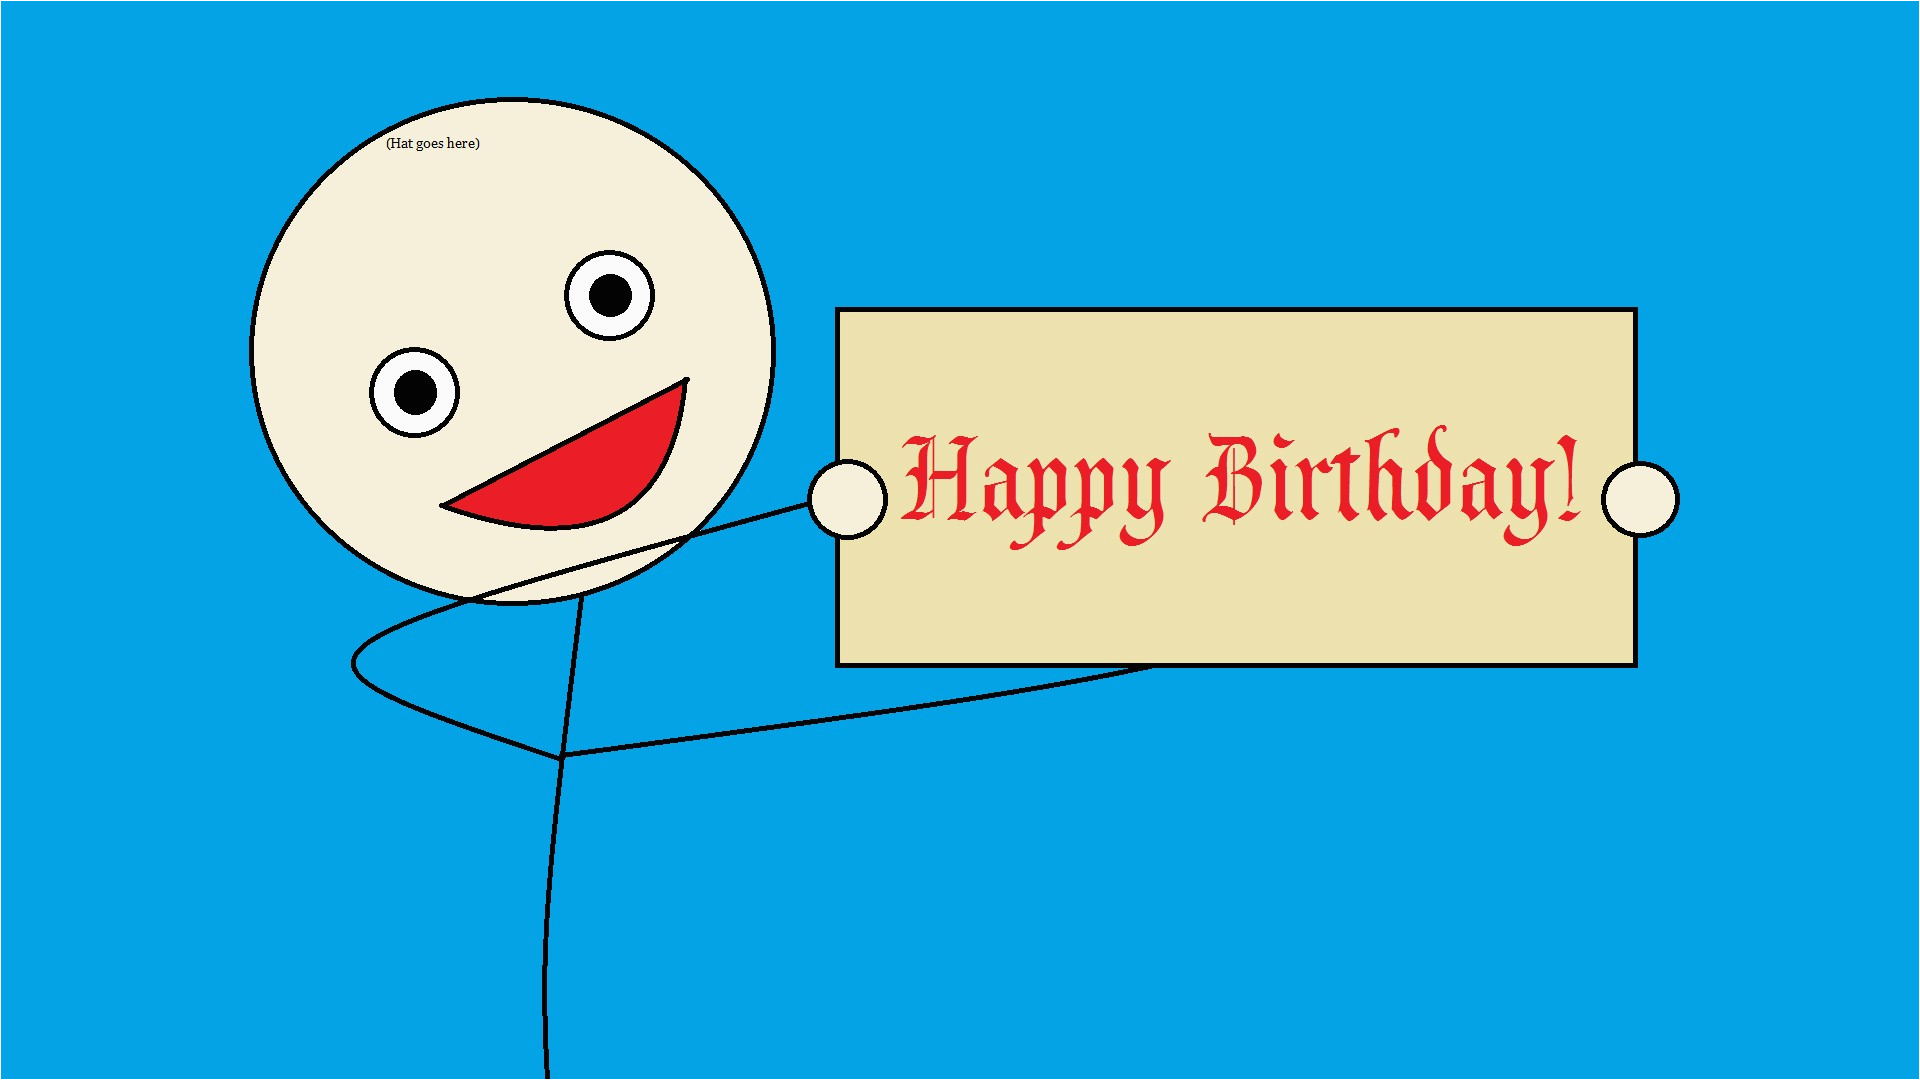 Happy Birthday Funny Video Card Funny Birthday Wallpapers Wallpapersafari